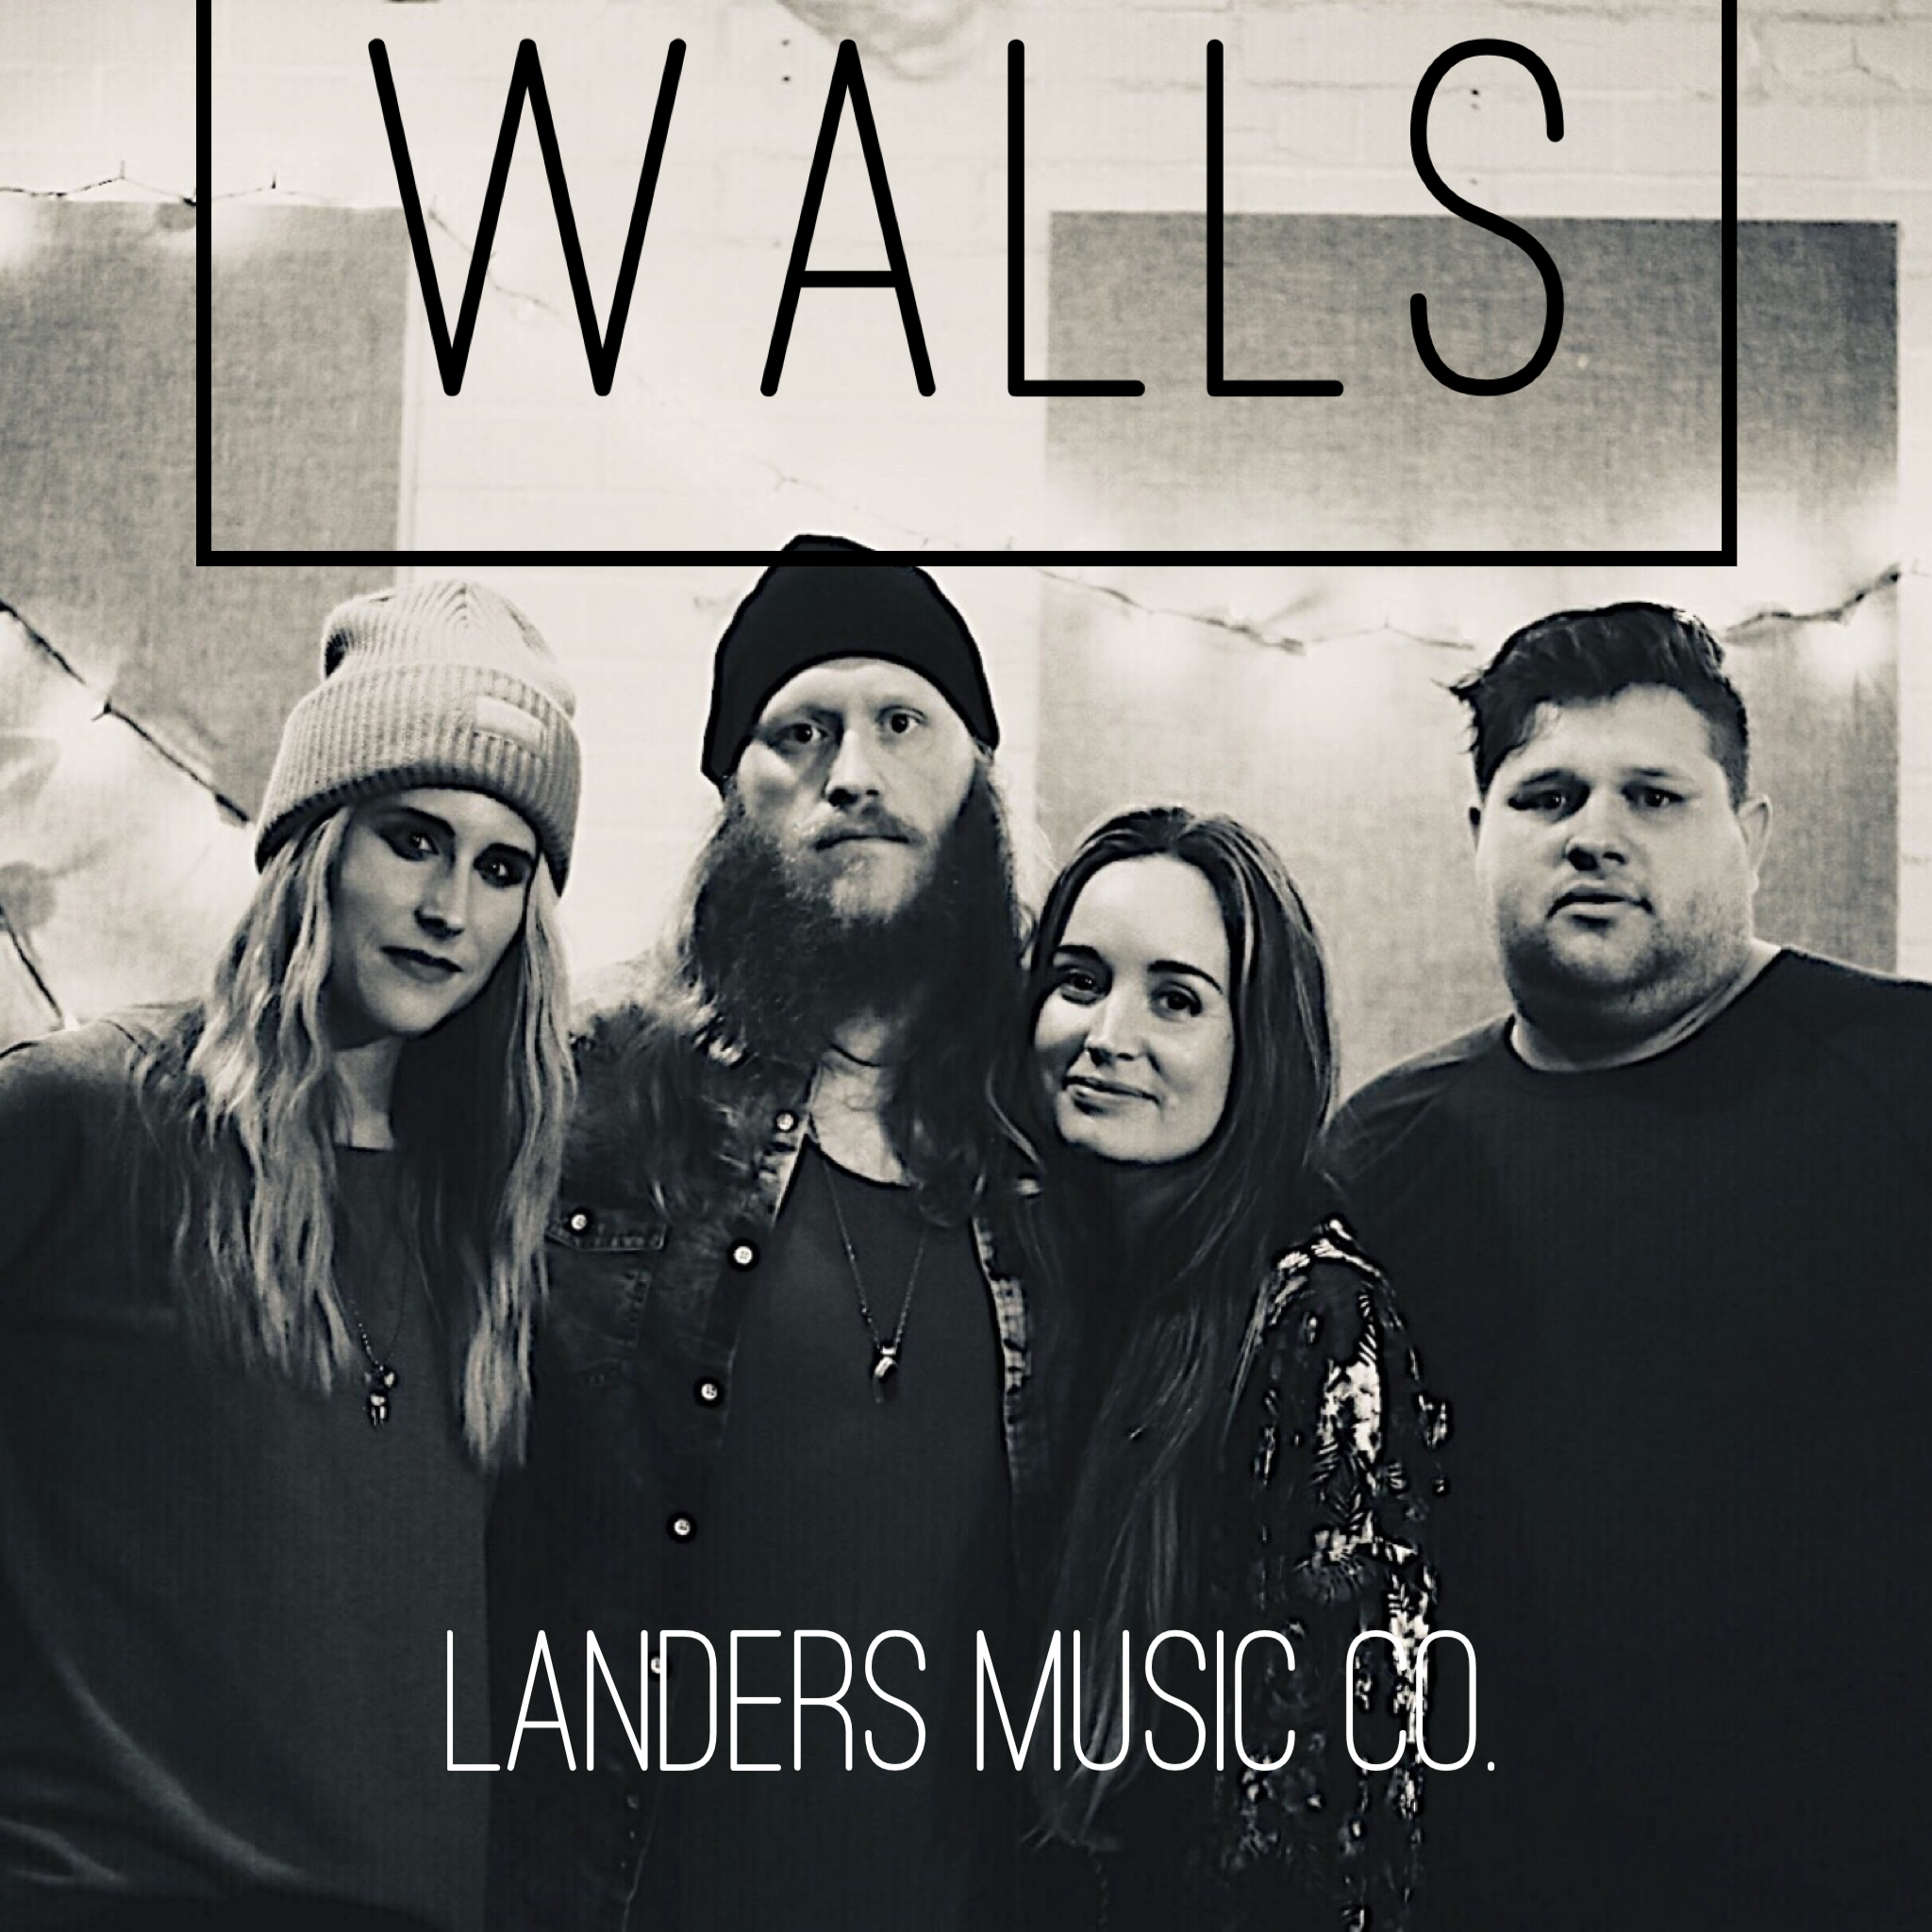 LANDERS MUSIC CO. RELEASES NEW SINGLE TITLED 'WALLS'